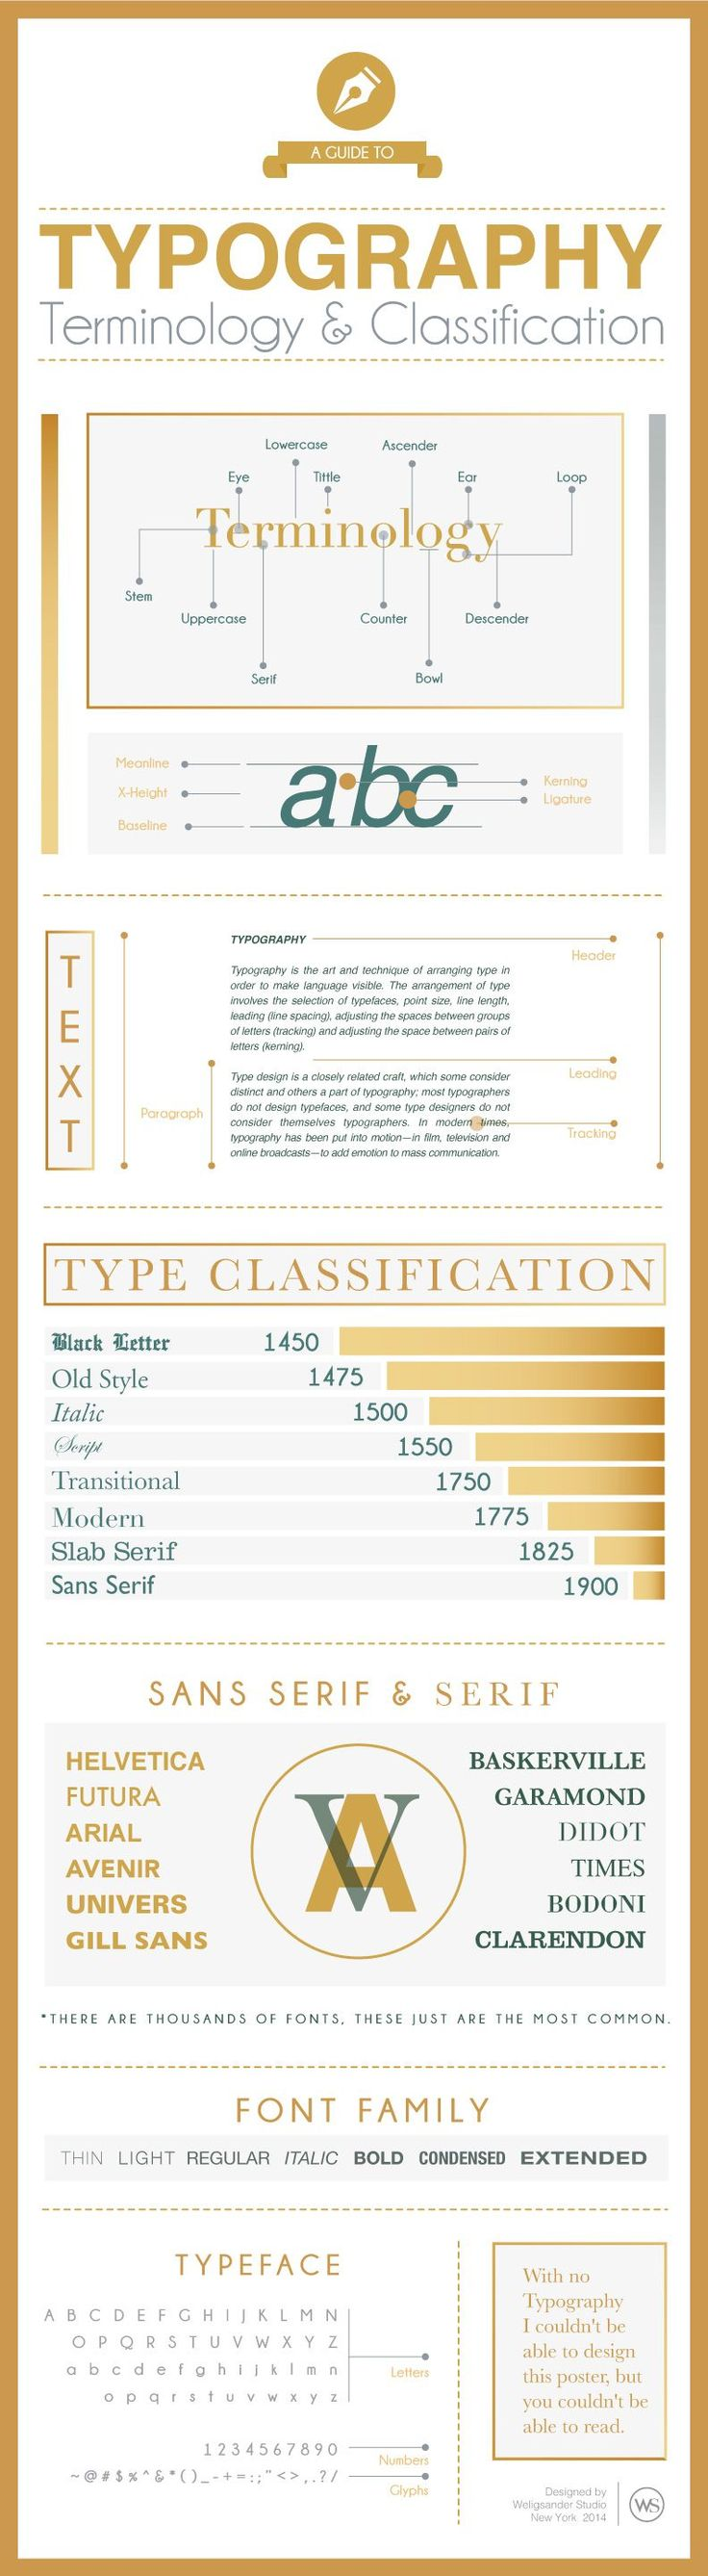 No matter what your stage in the book development process, having a grip of solid typography principles can be a helpful asset in the pursuit of quality design and marketing. This the case, here's a useful infographic that breaks down the basics: